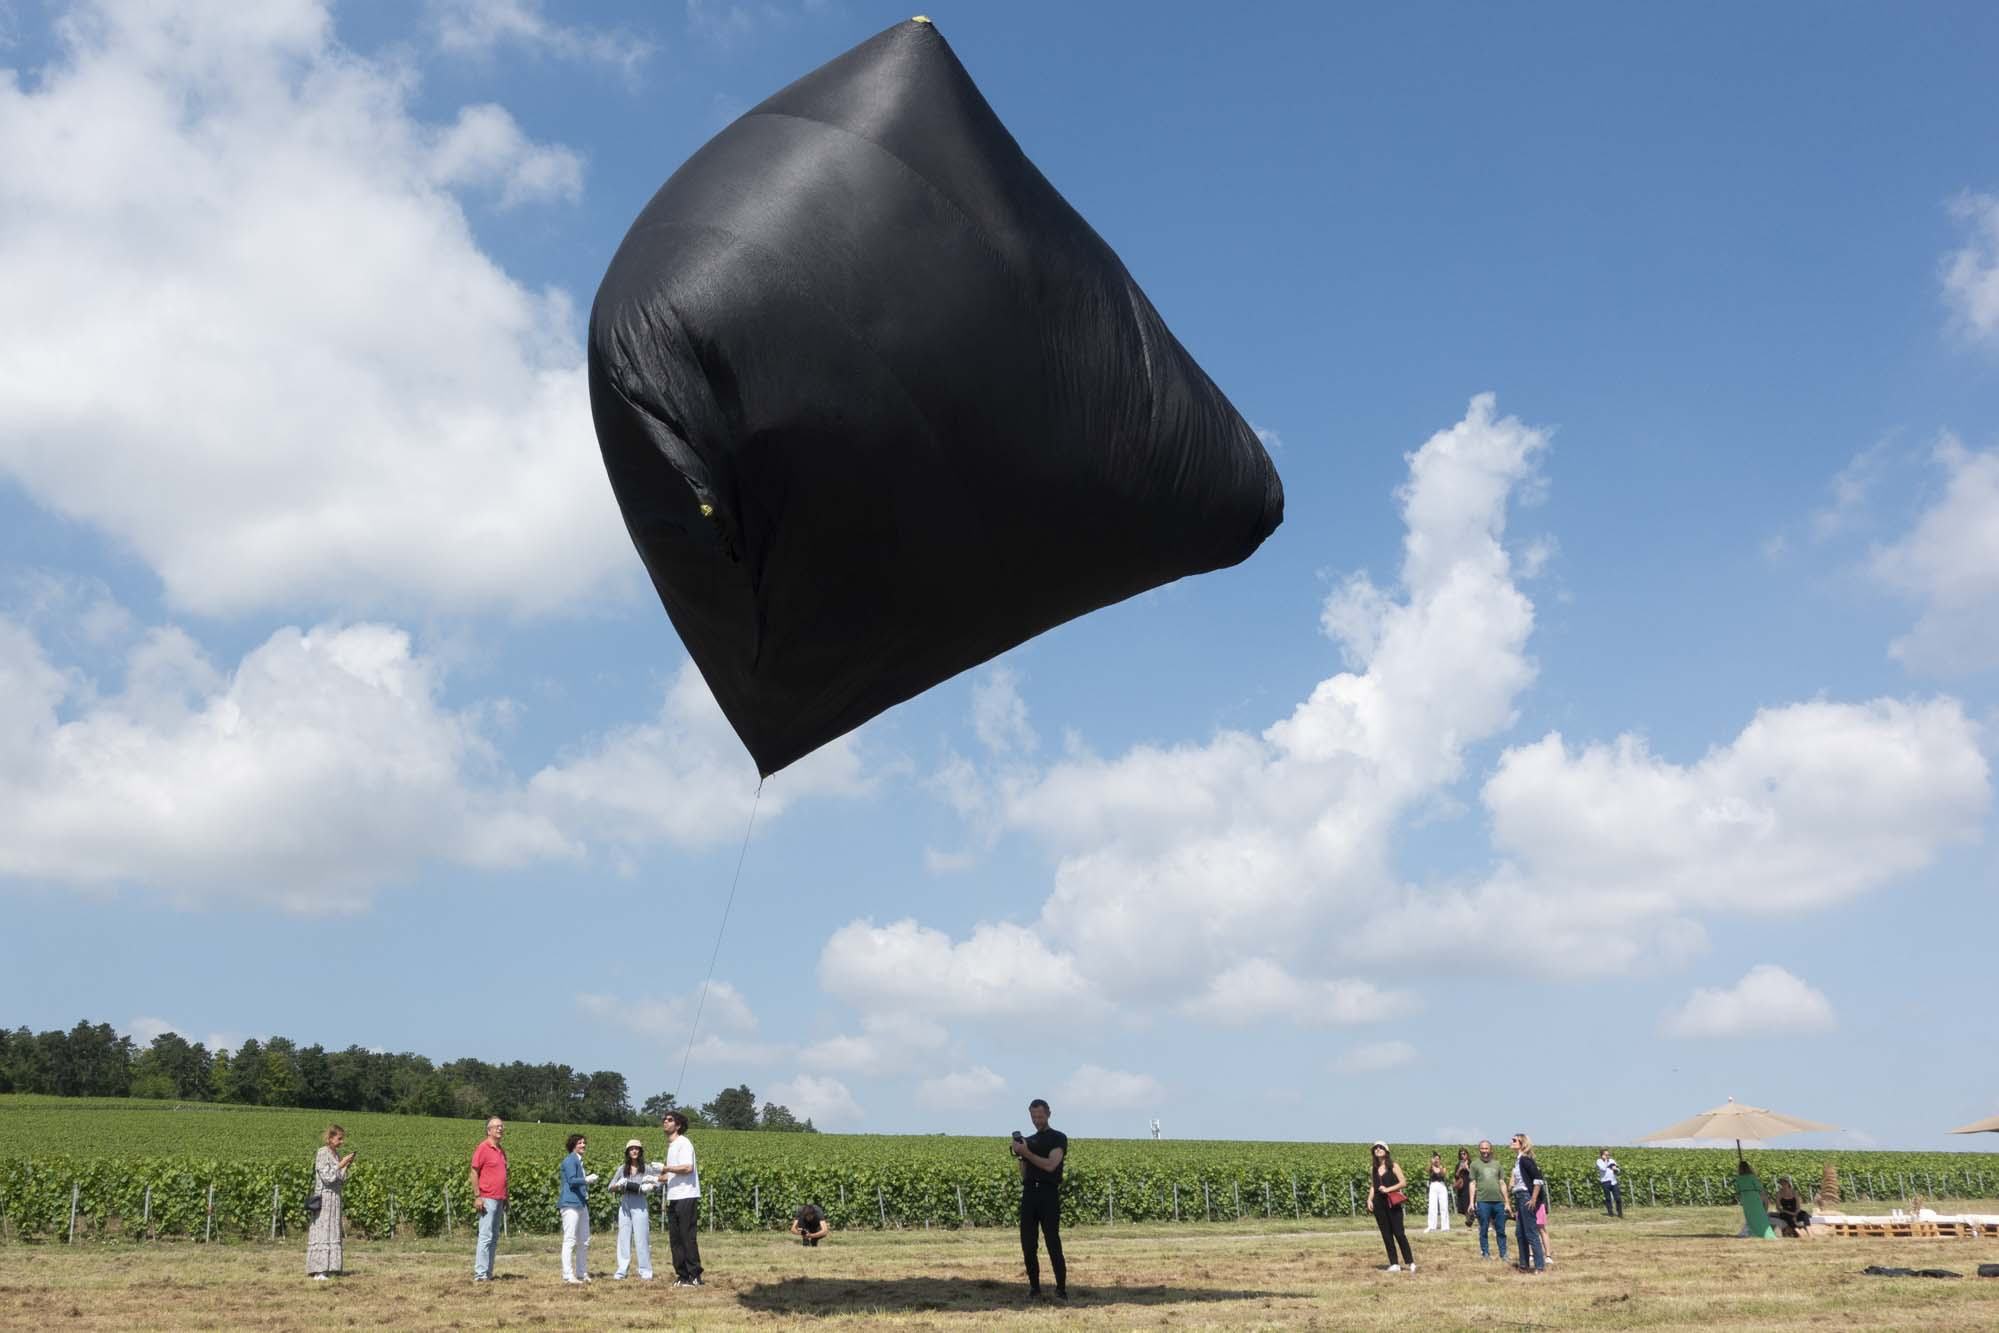 Aerocene Sculpture by Tomás Saraceno floating in the sky over the Ruinart vineyards in Champagne near Reims